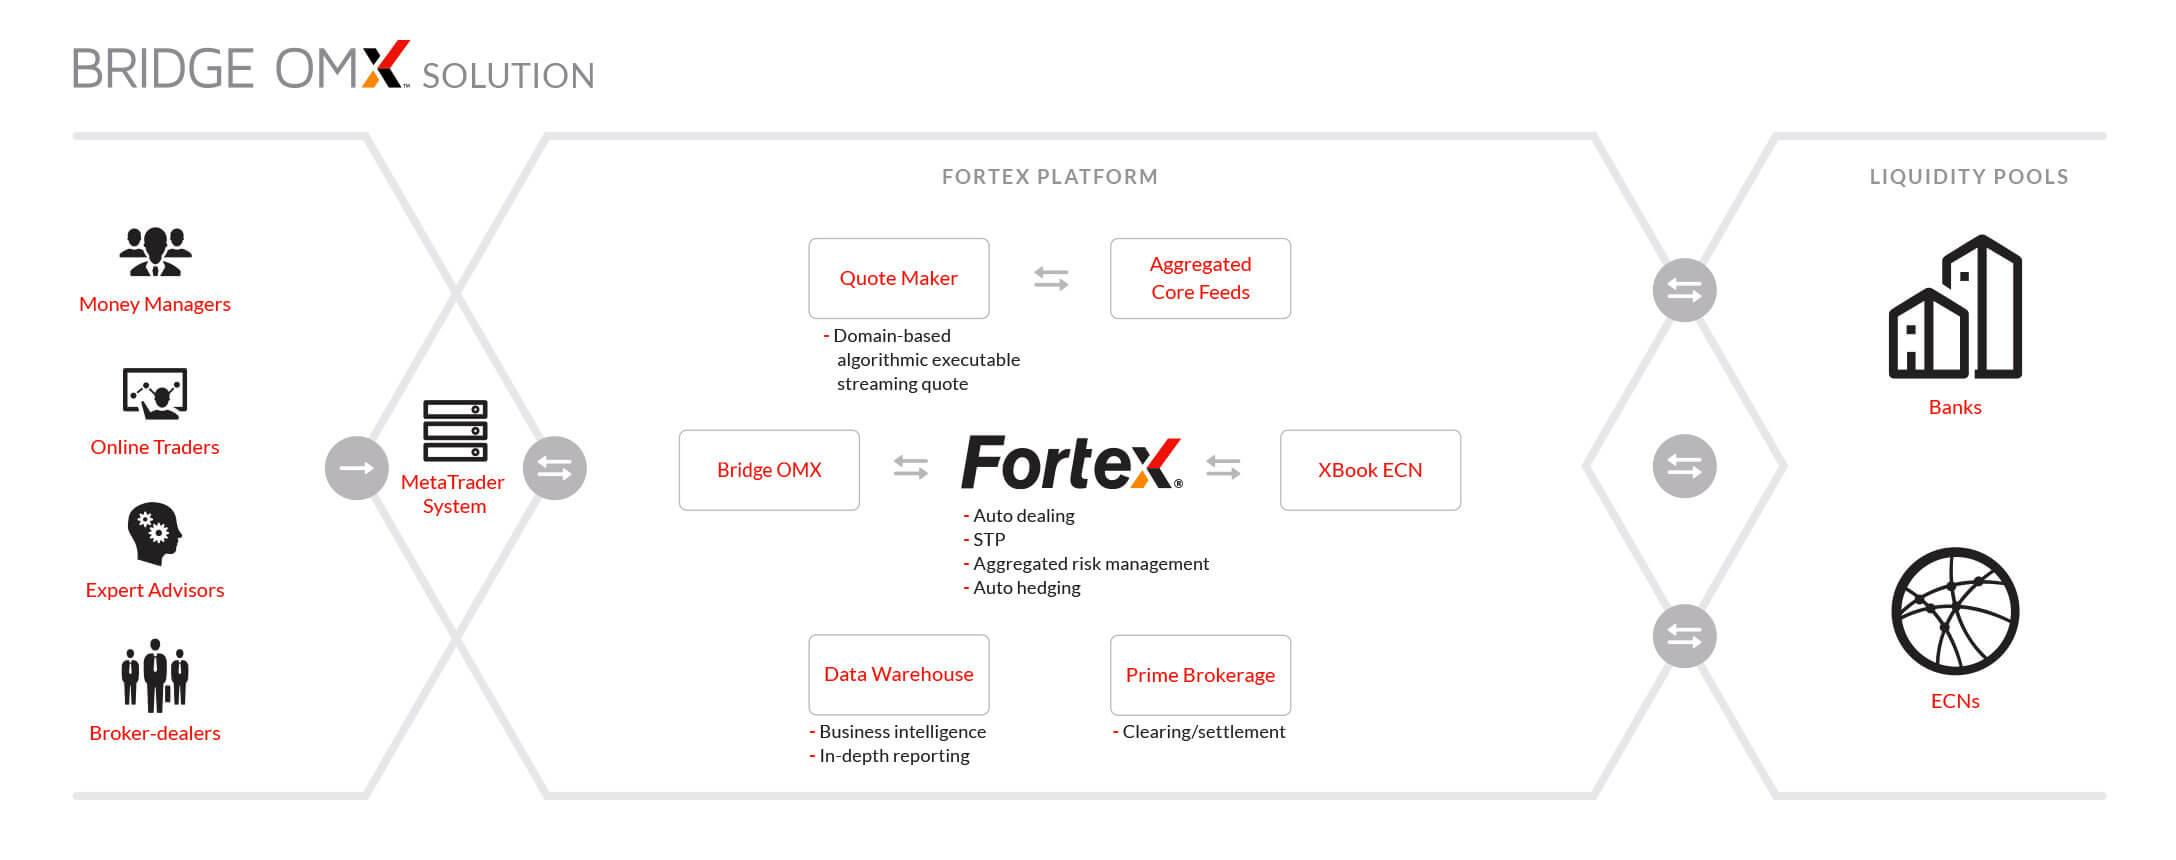 Fortex Bridge OMX solution transformed FX trading for tens of thousands of MetaTrader users and was the driving force behind the success of MT4 powerhouses.